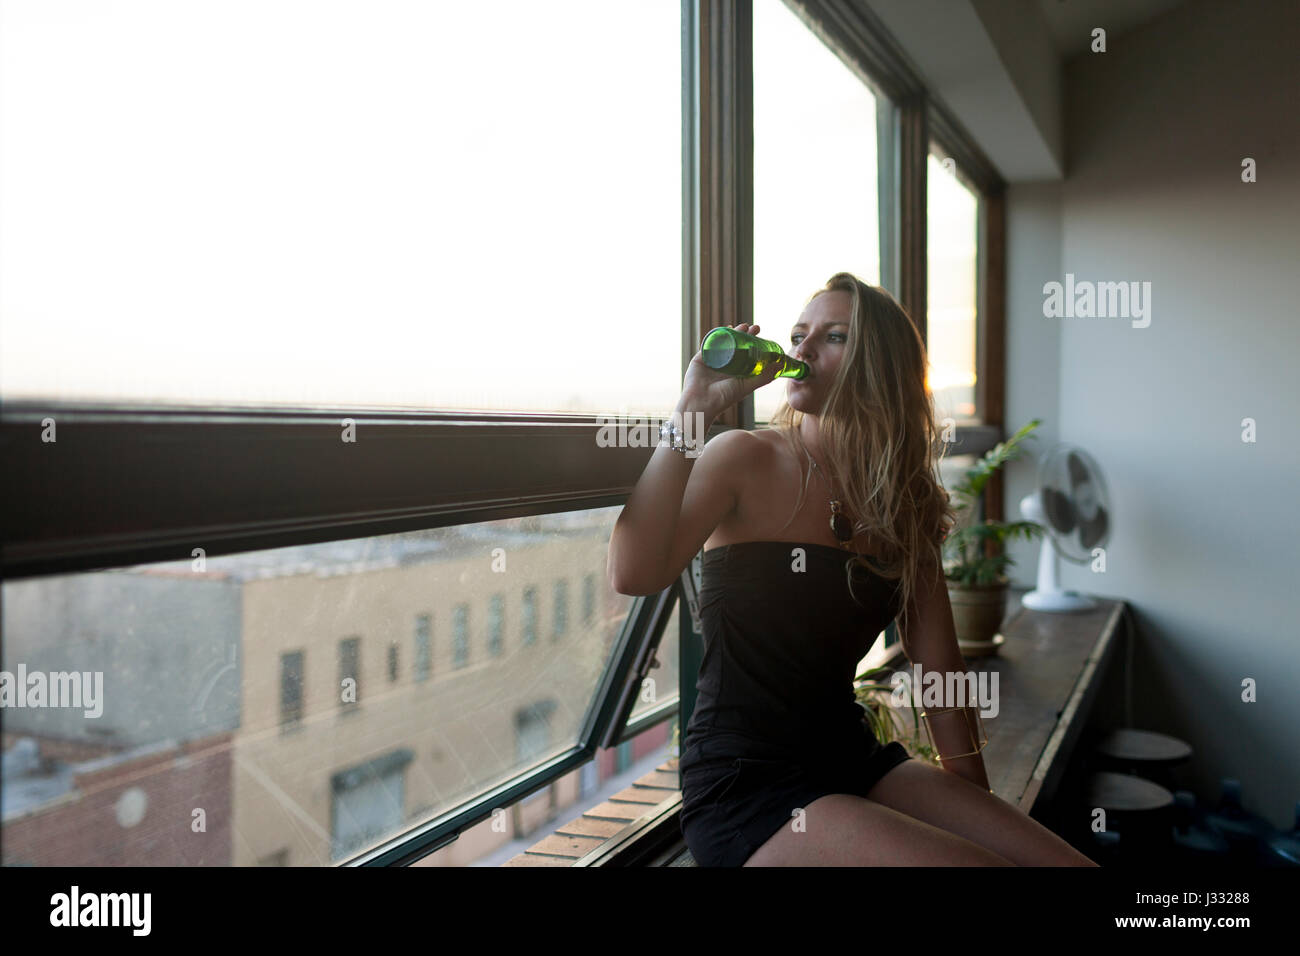 Young woman drinking a beer while looking out a window - Stock Image